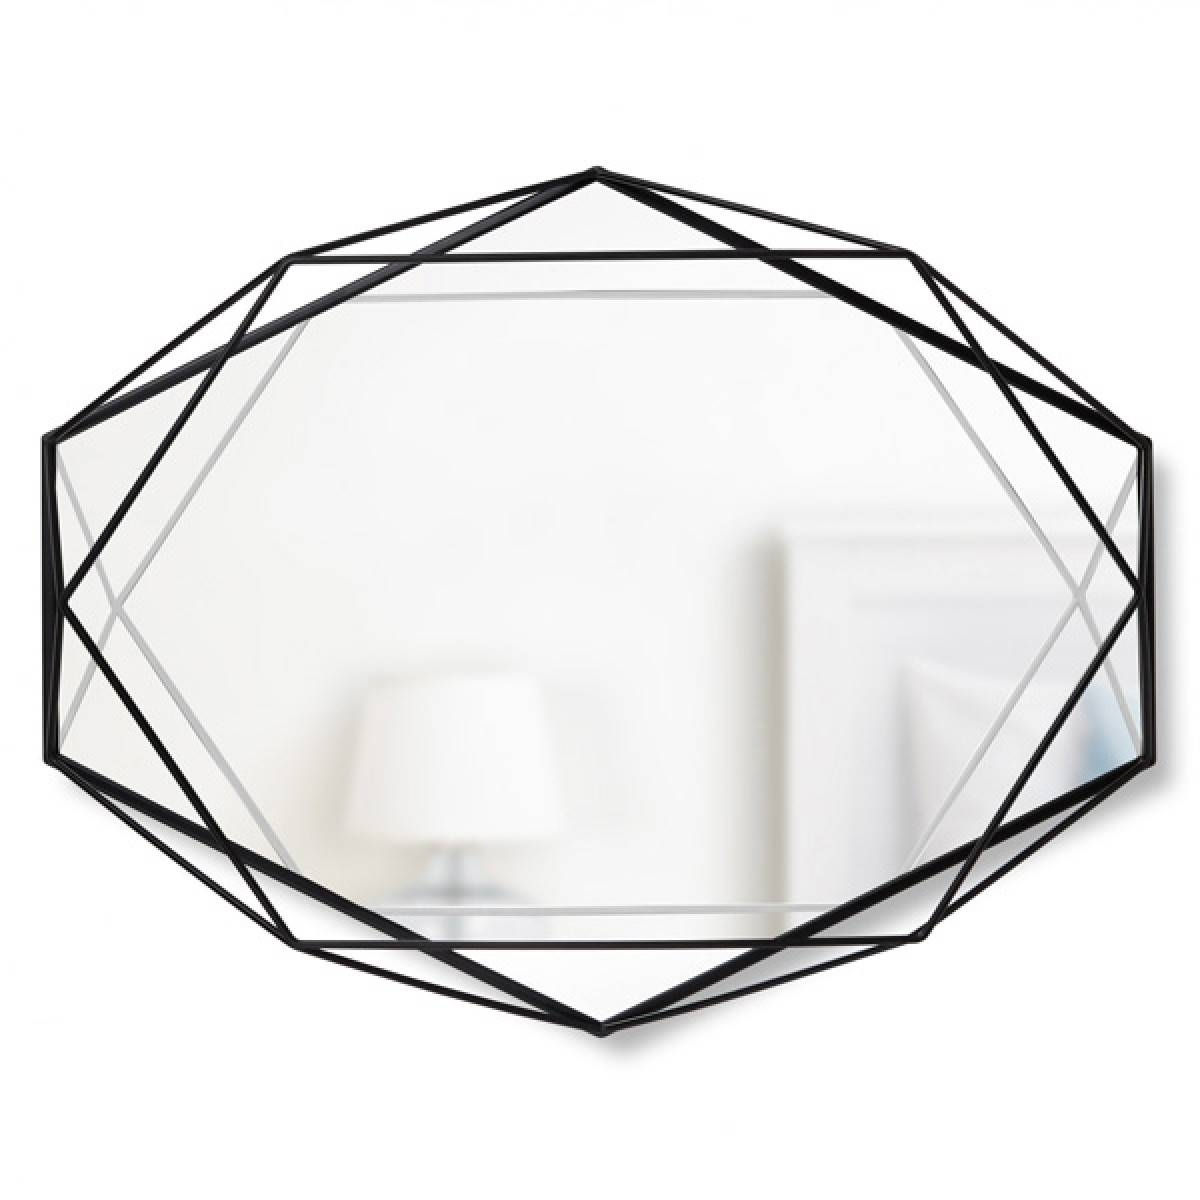 Unique Shaped Mirror 25 Collection Of Odd Shaped Mirrors